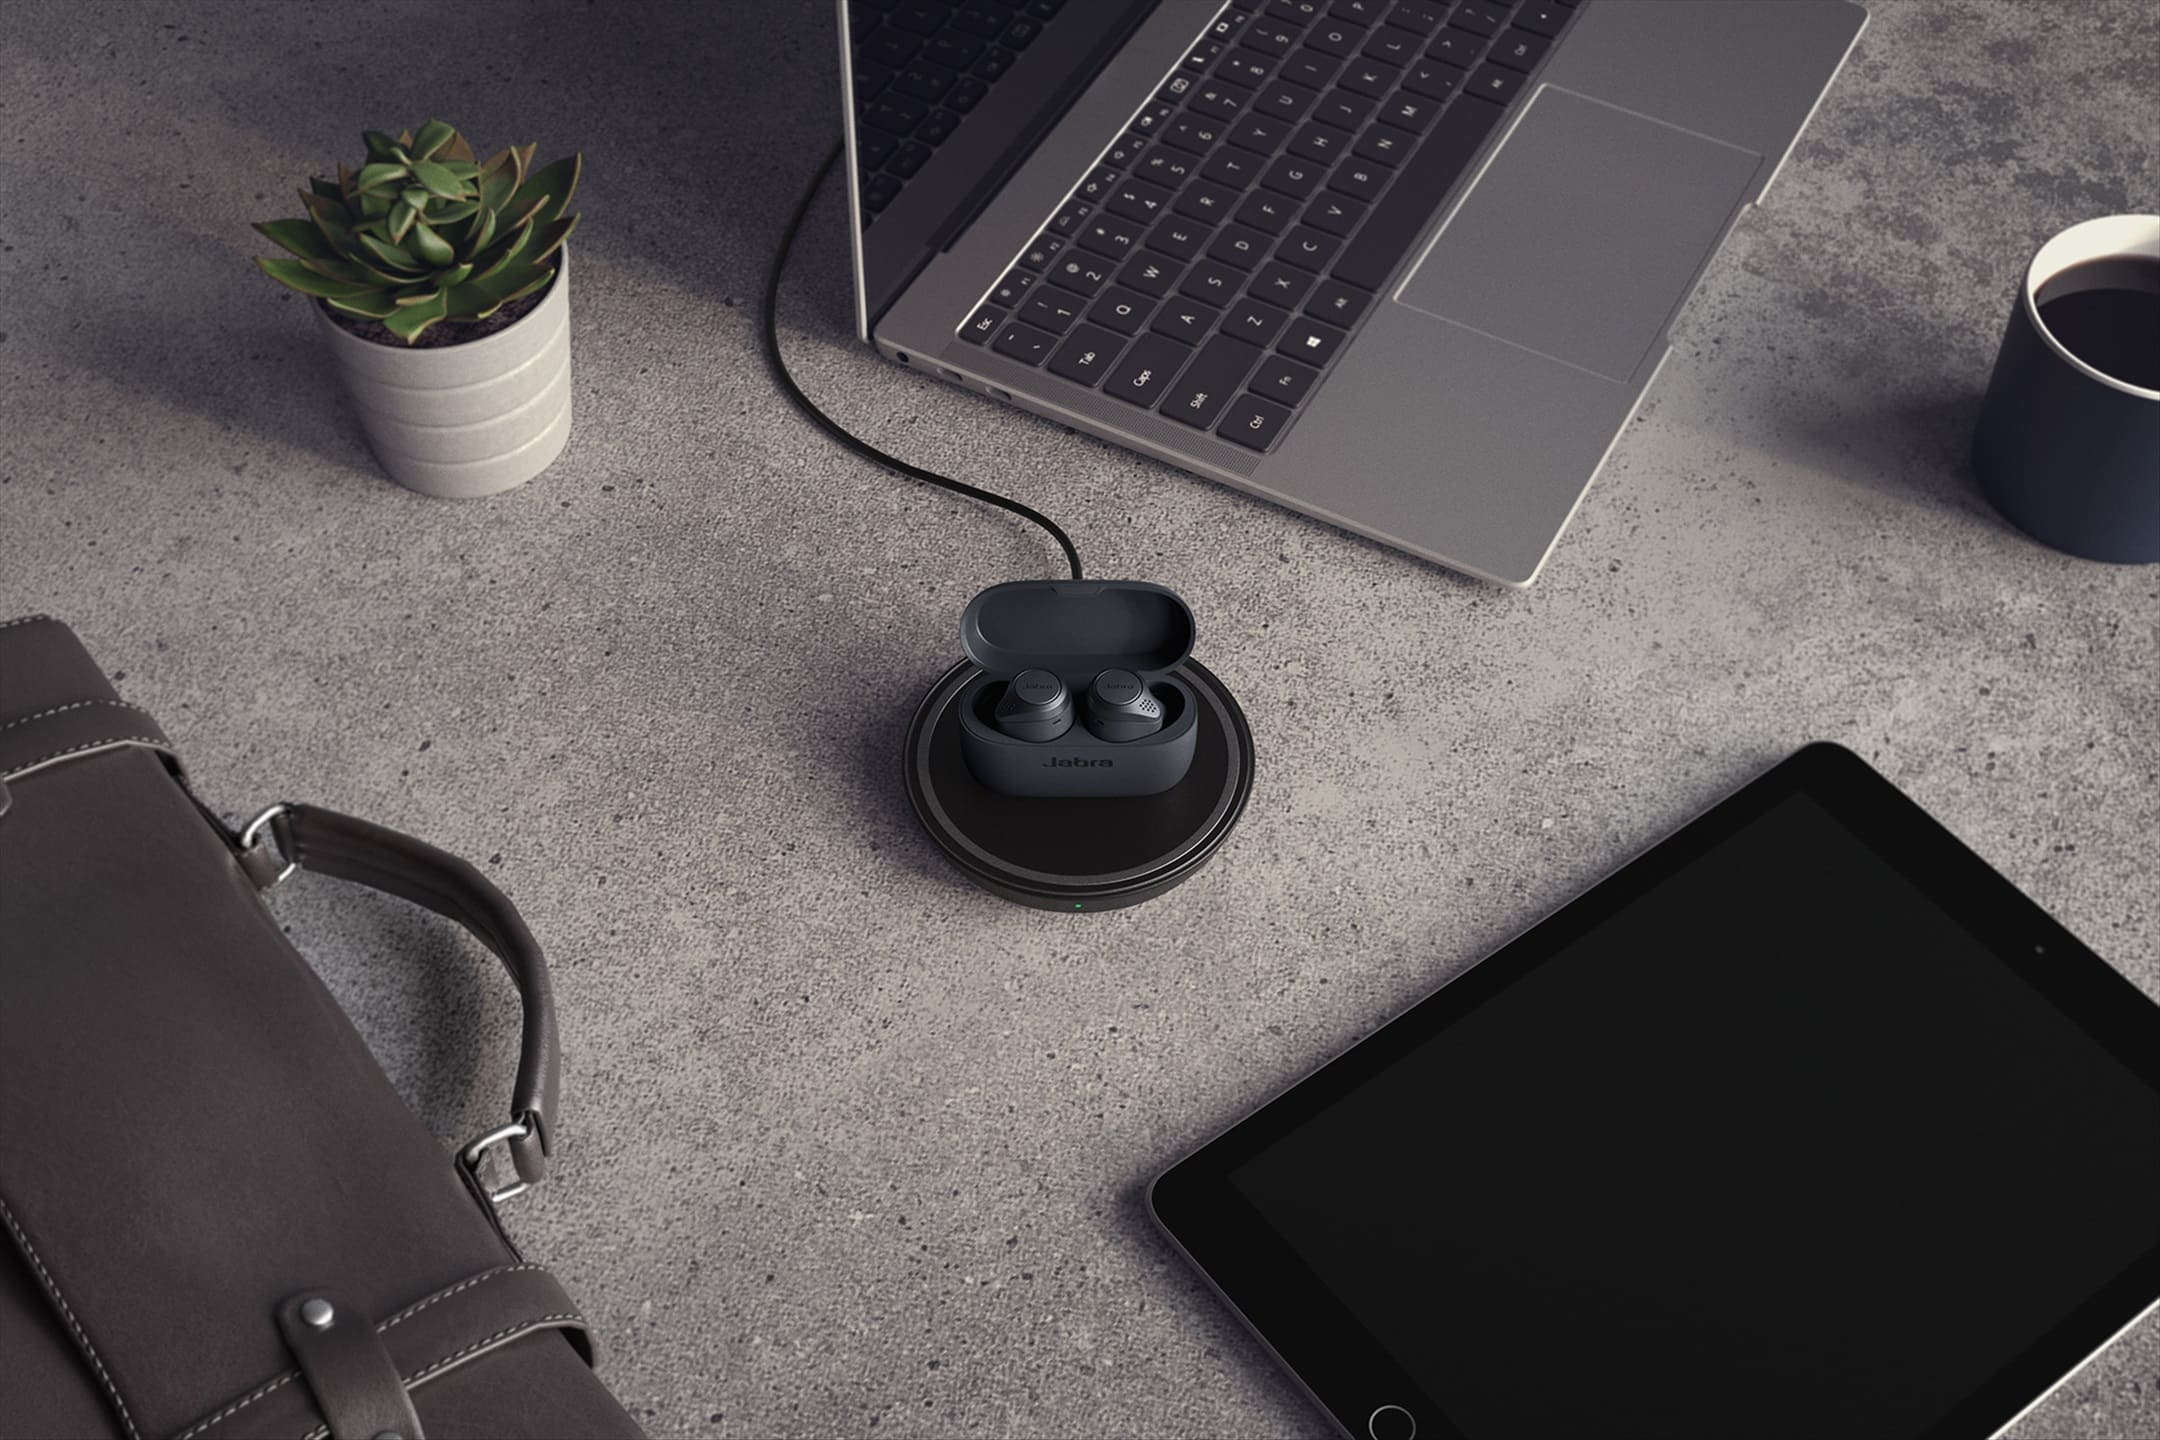 Jabra Elite 75t & Active 75t now come with wireless charging case